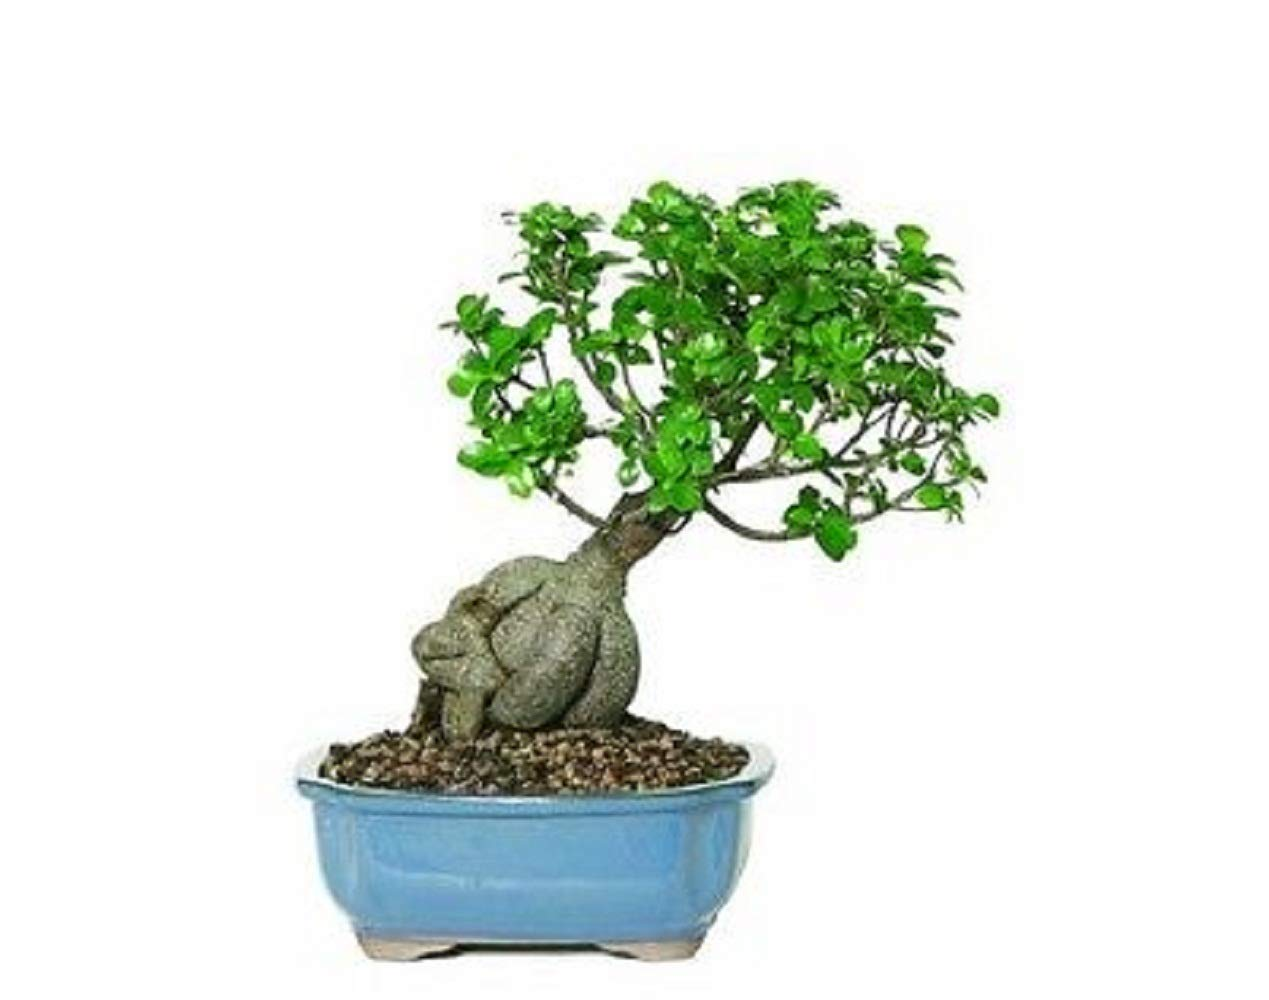 Gensing Grafted Ficus Bonsai Tree Plant Live 5 Years Old Tropical Beauty Home V3